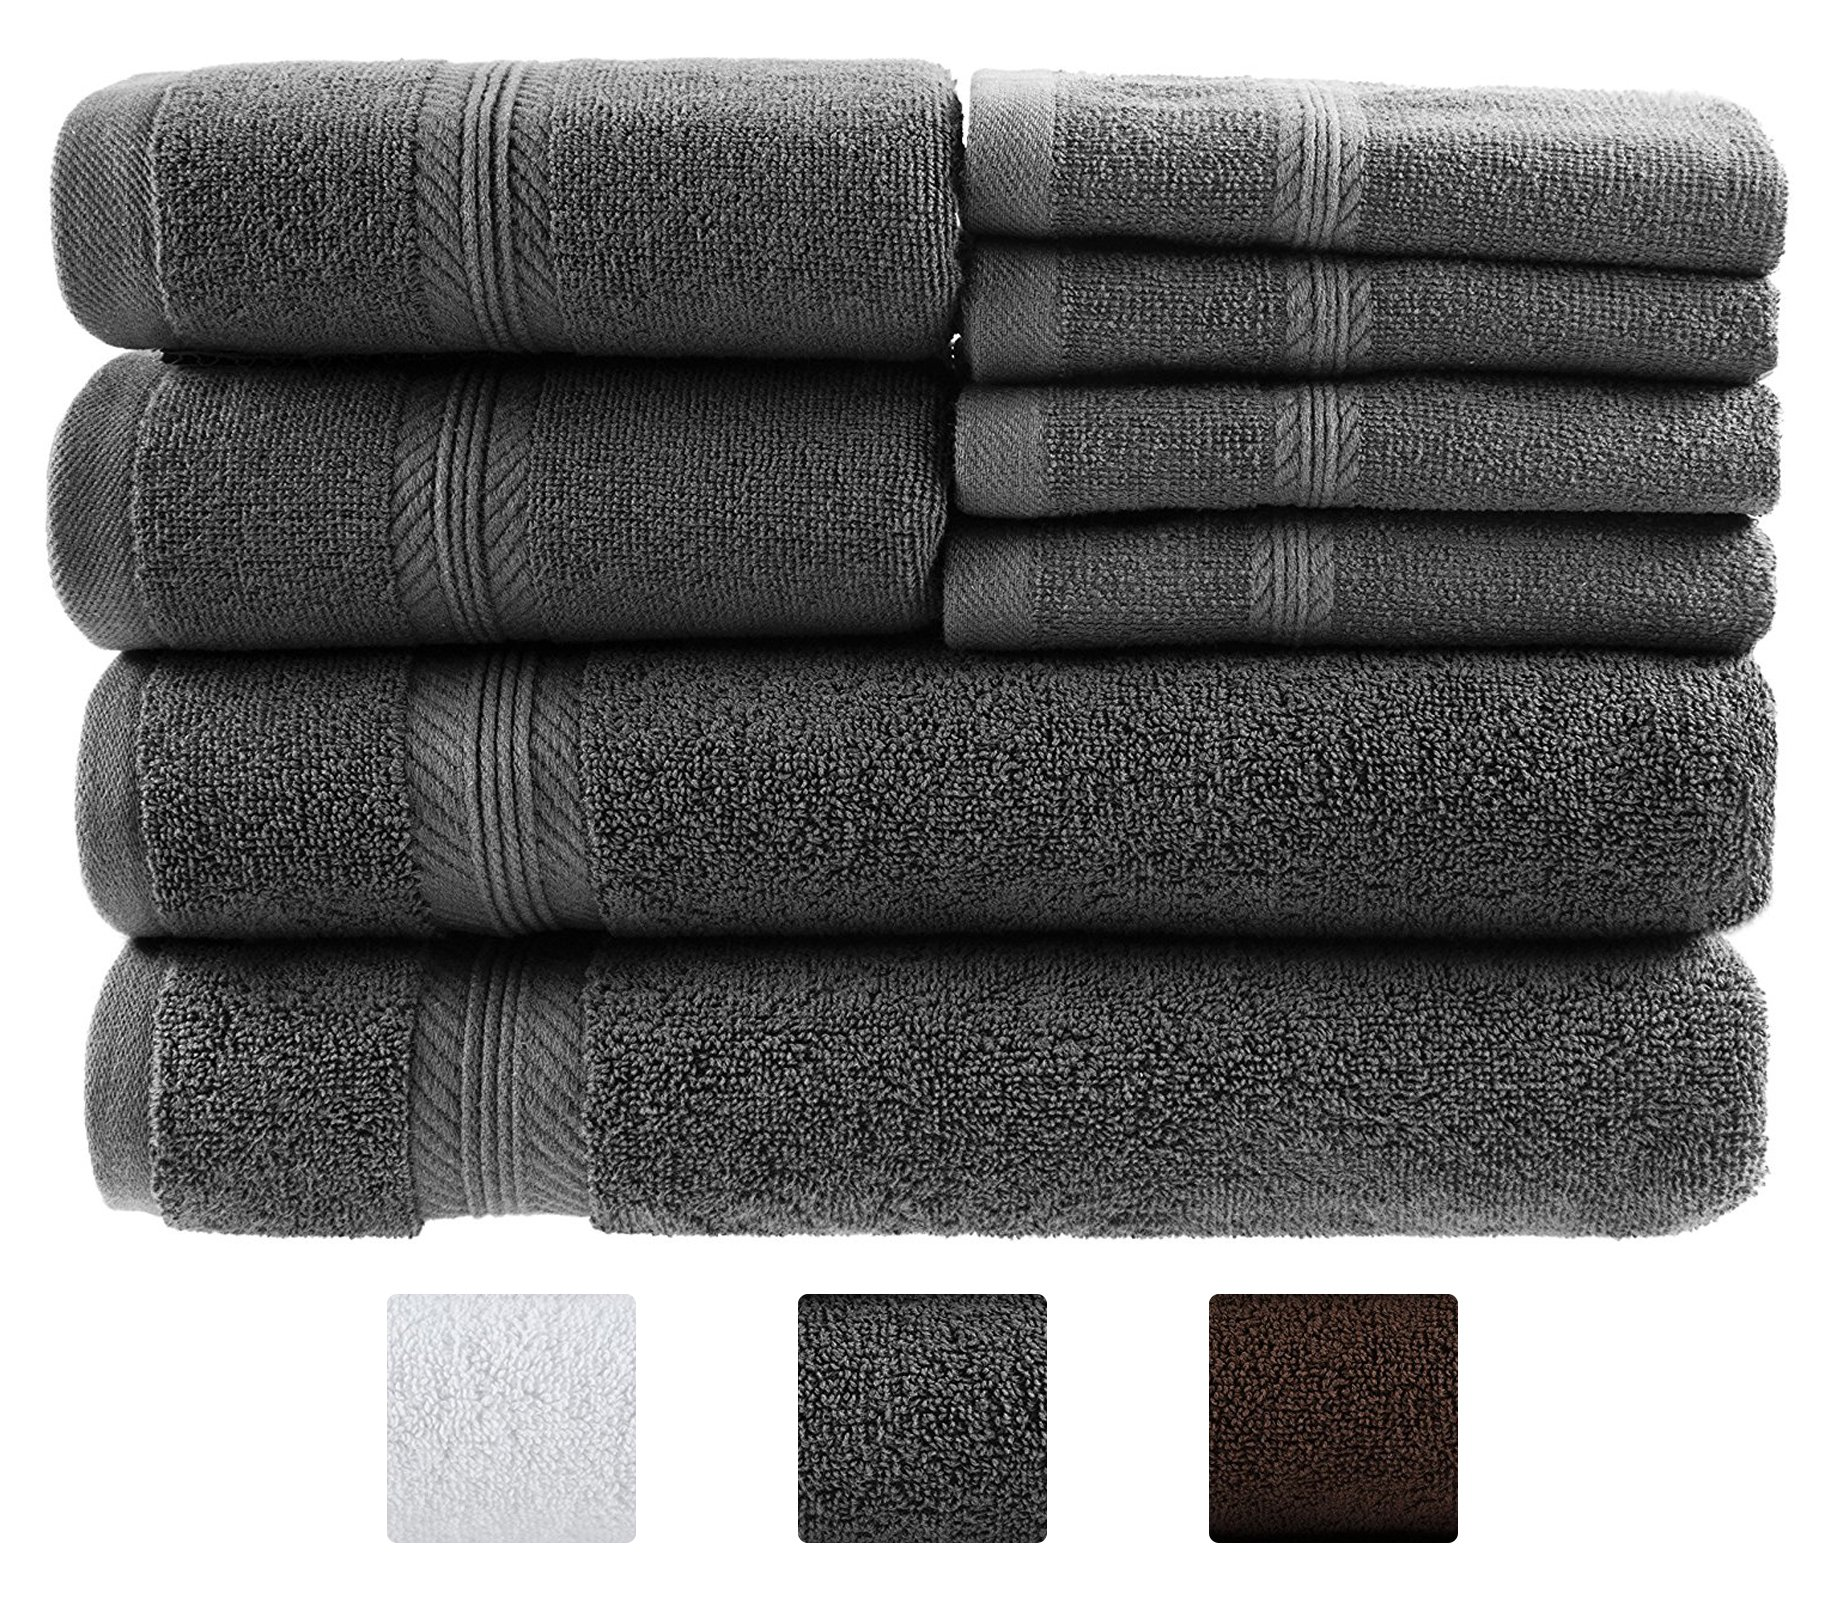 8 Piece Towel Set, 100% Ring Spun Genuine Cotton, Absorbency & Softness, Hotel & Spa Quality for Kitchen and Decorative Bathroom, 2 Bath Towels, 2 Hand Towels and 4 Washcloths, Dark Grey